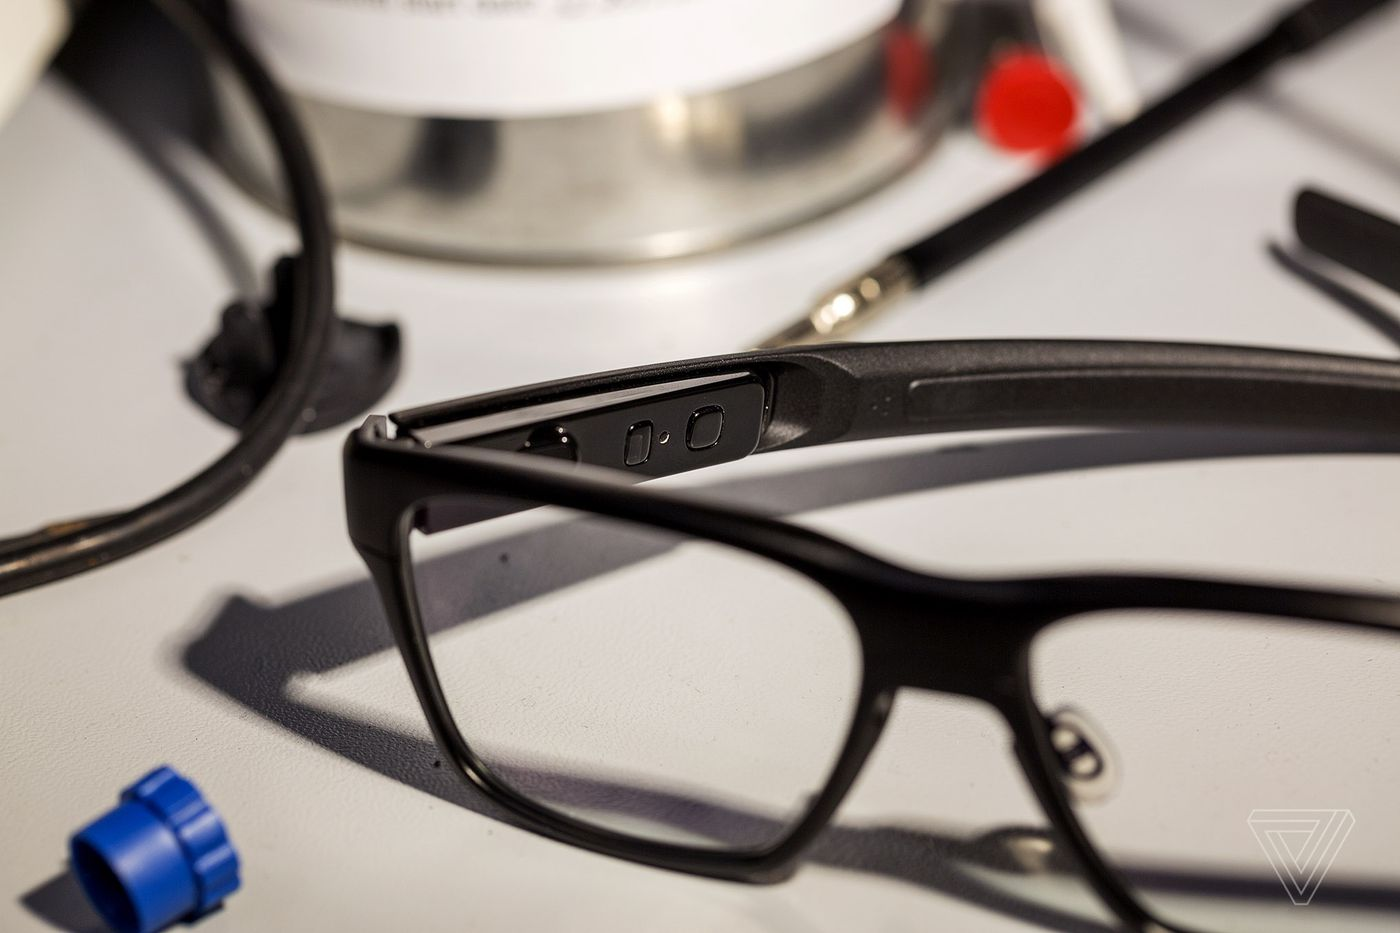 01a851a05dcf Exclusive: Intel's new Vaunt smart glasses actually look good - The Verge